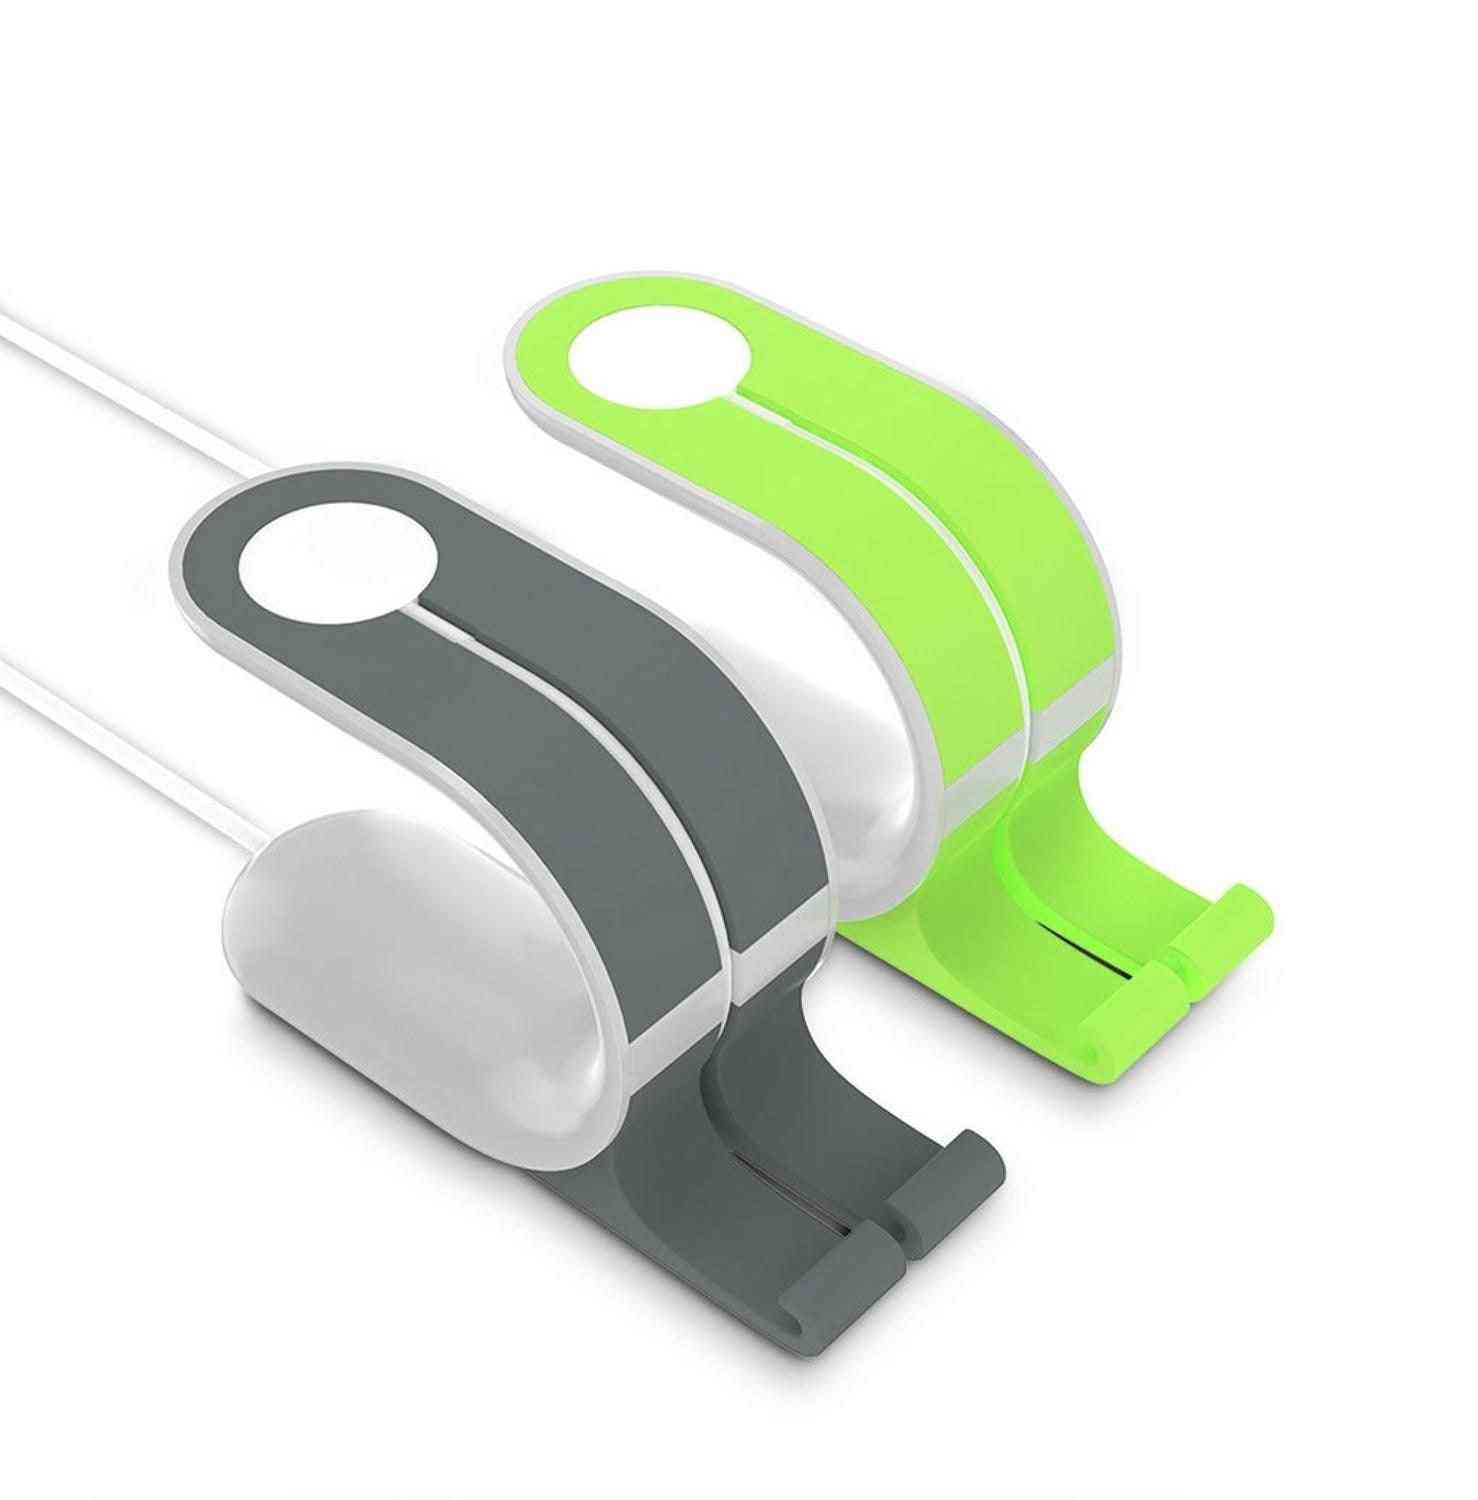 Multi Stand, Docking Silicone Station, Charger Holder